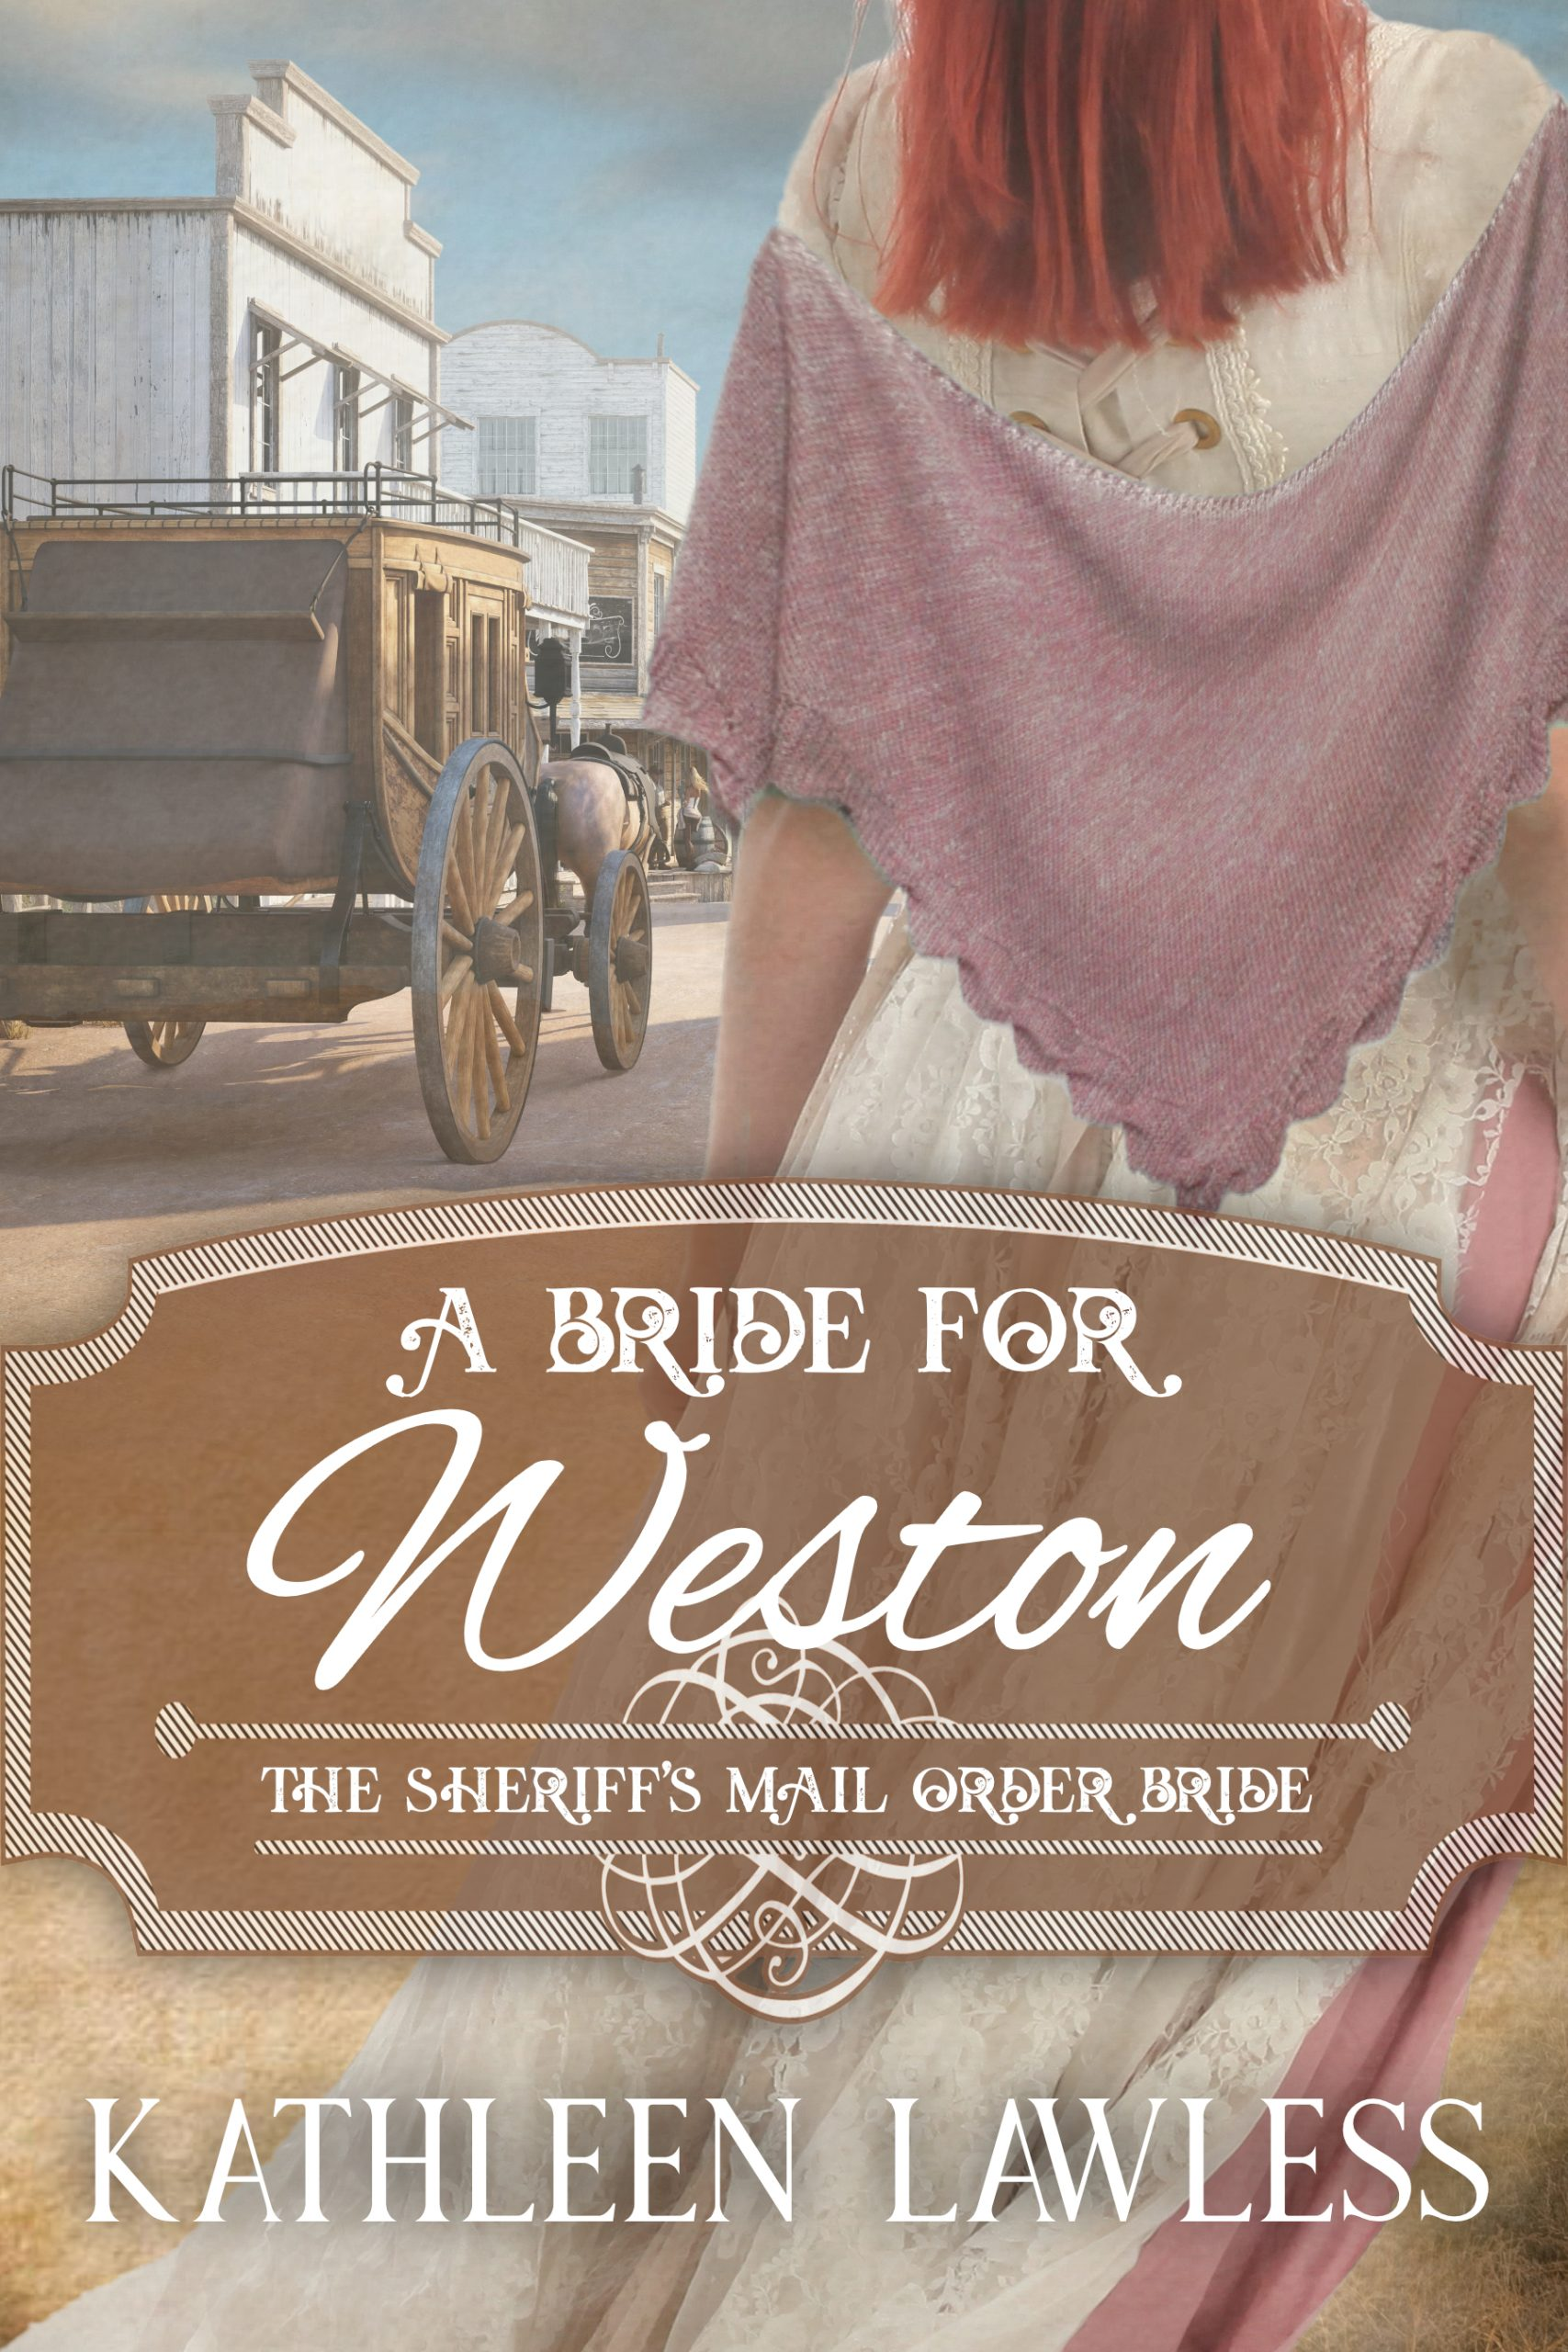 A Bride for Weston by Kathleen Lawless